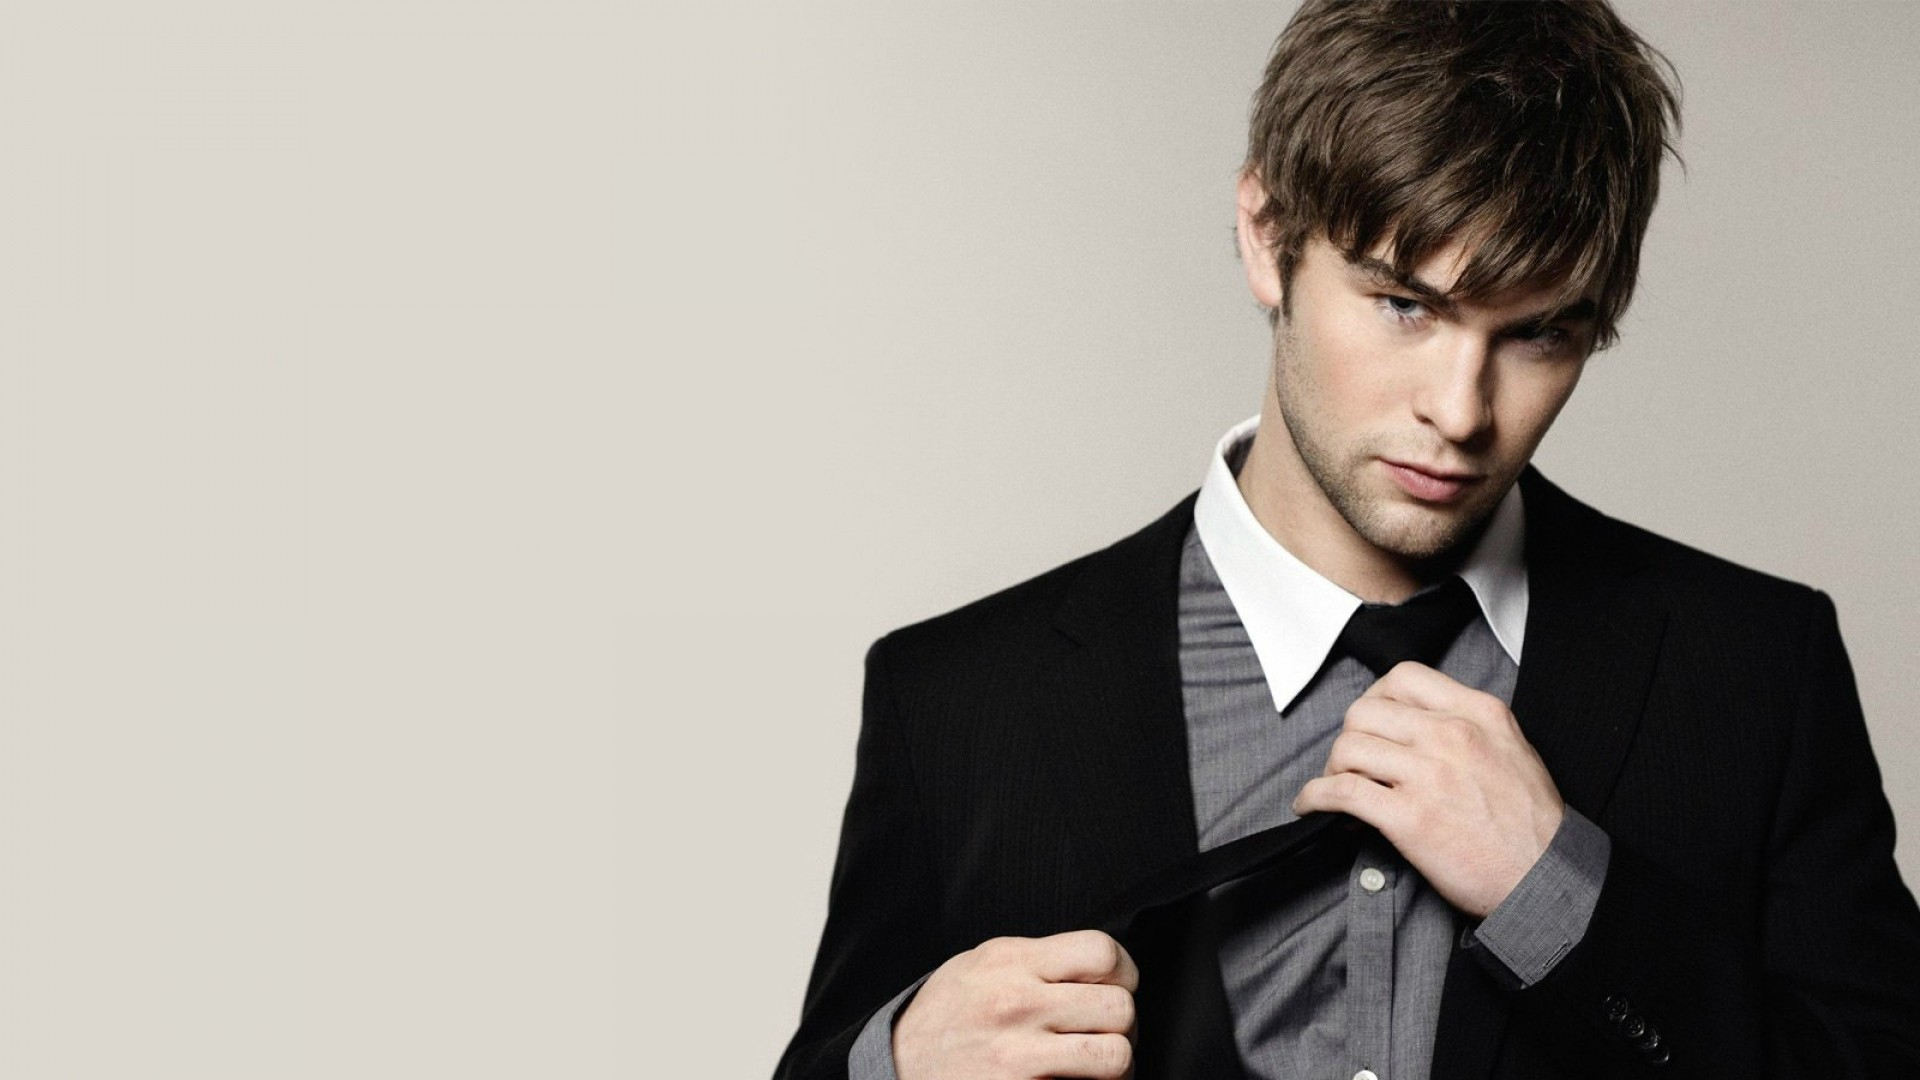 Res: 1920x1080, chace crawford, tuxedo, style